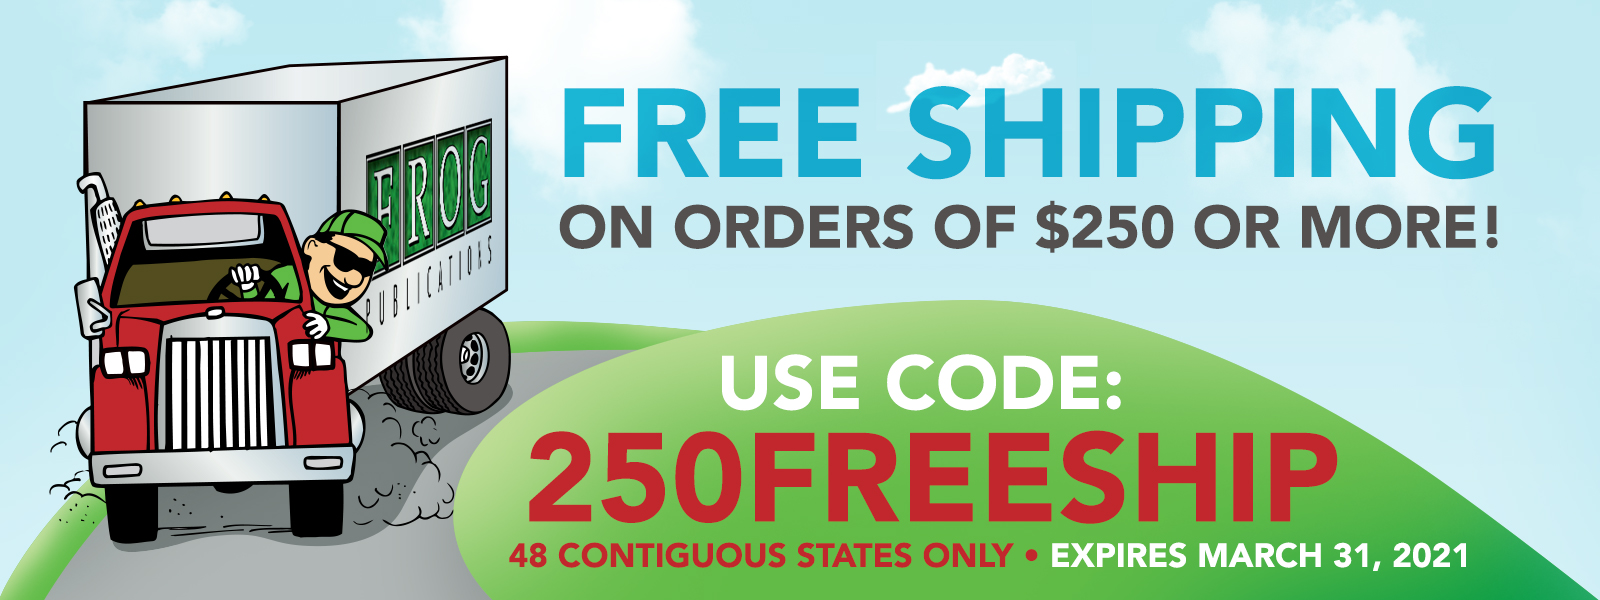 Free Shipping on orders of $250 or more! Use Code 250FREESHIP